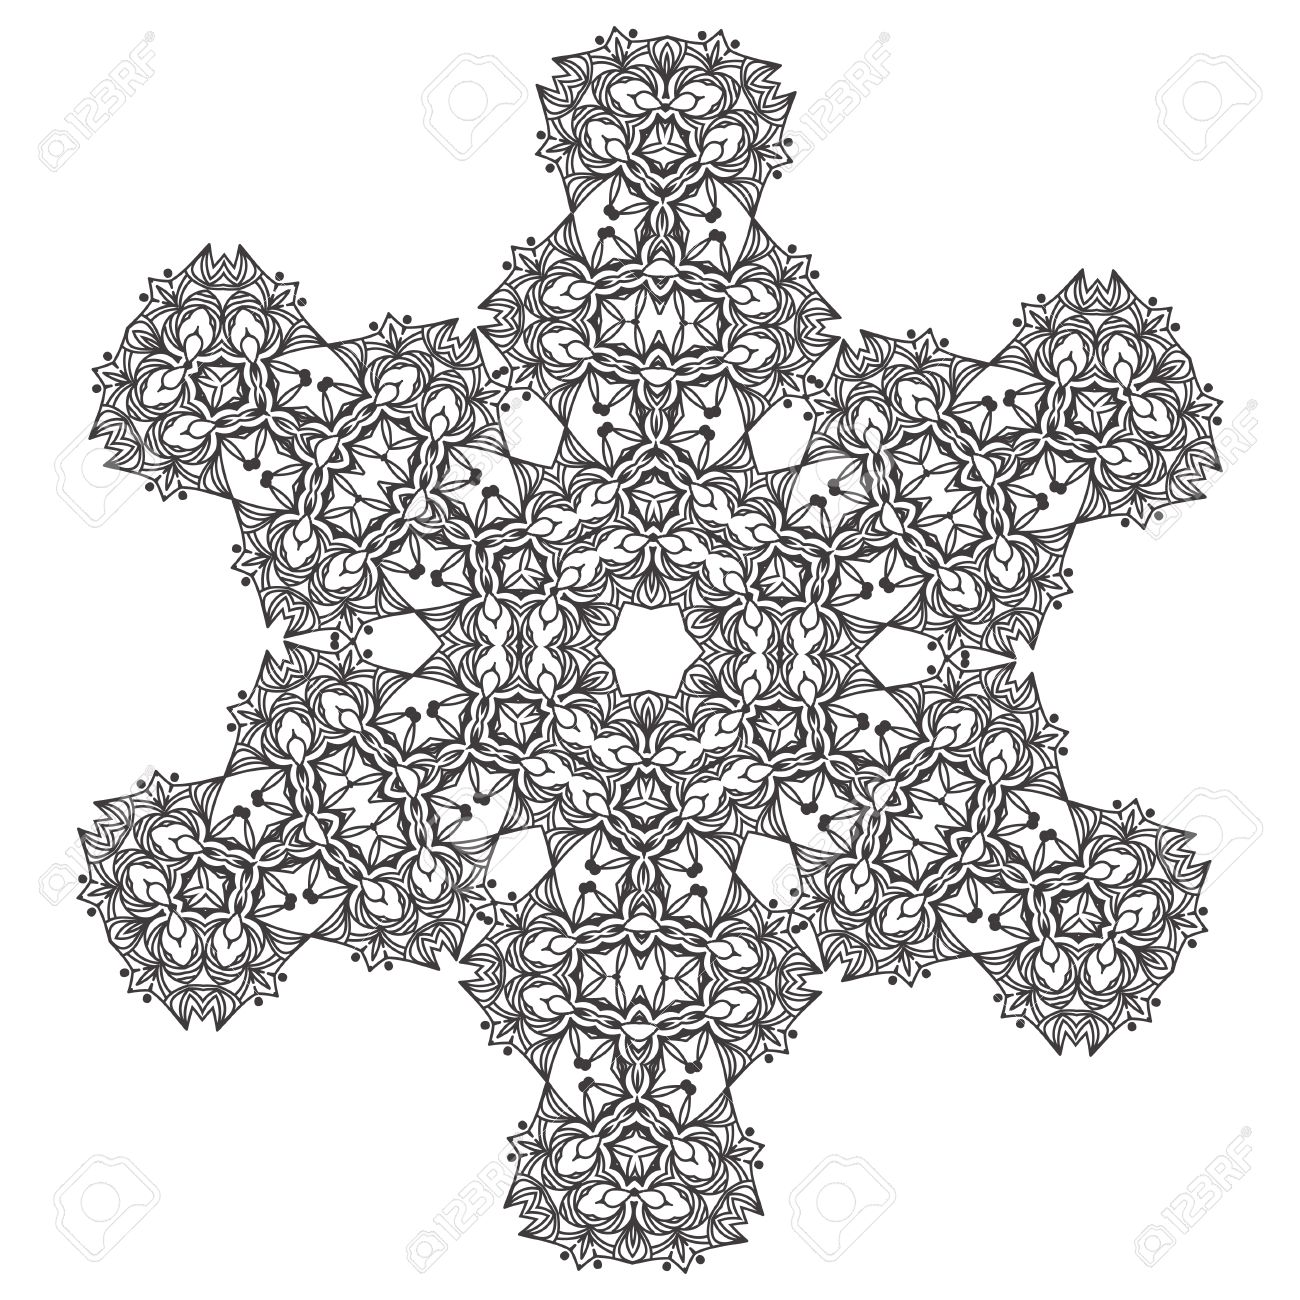 Abstract Lace Snowflake Mandala Ornament - Coloring Page For ...